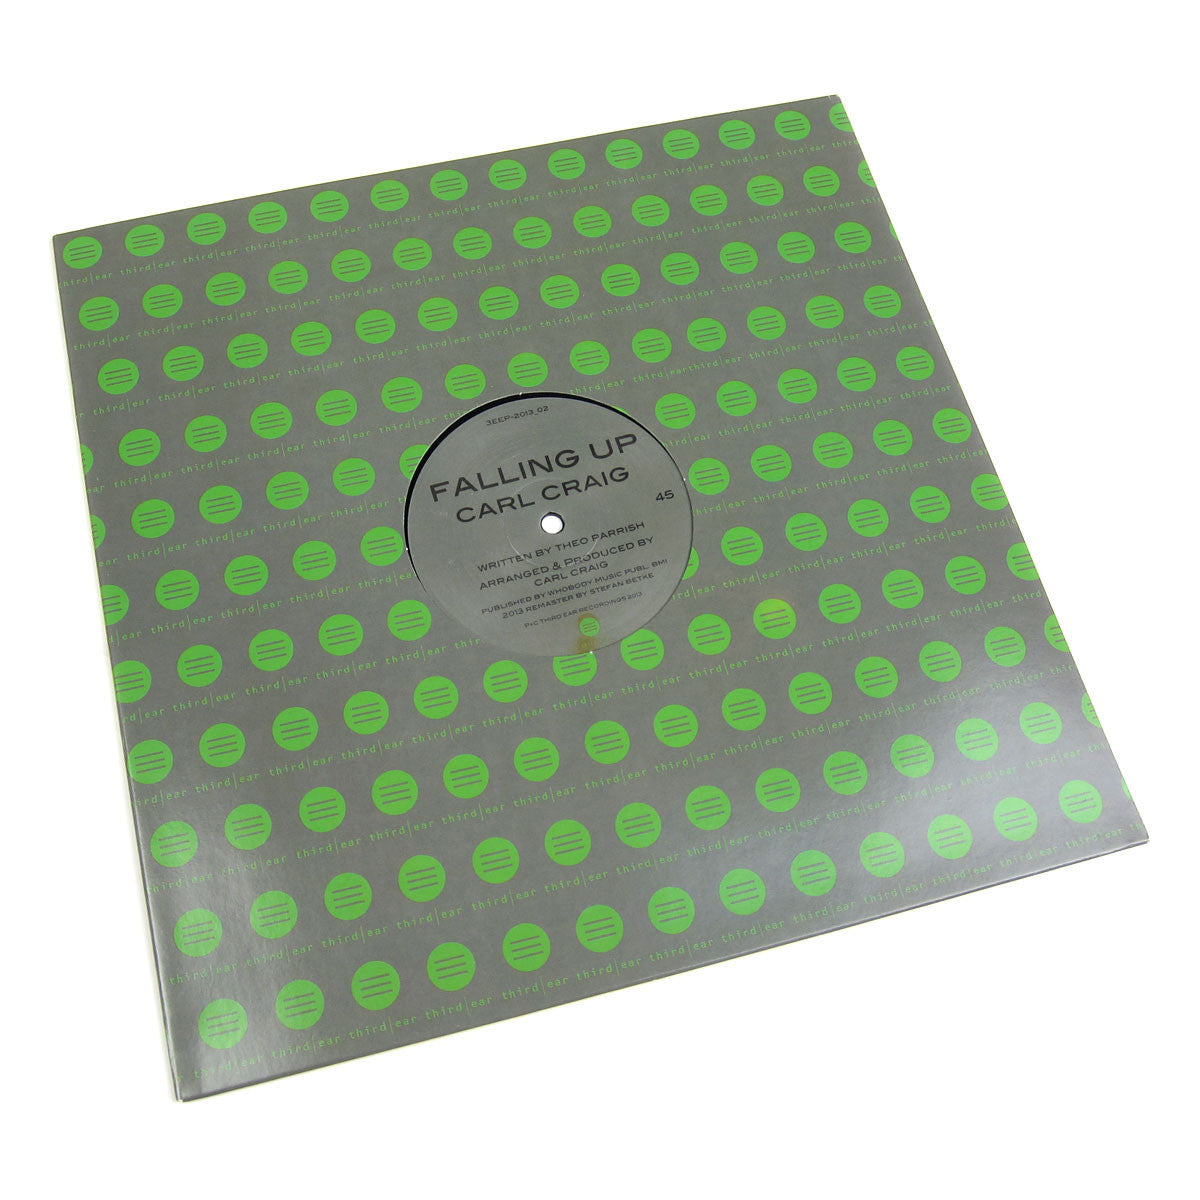 Theo Parrish: Falling Up 2013 (Carl Craig) Vinyl 12""